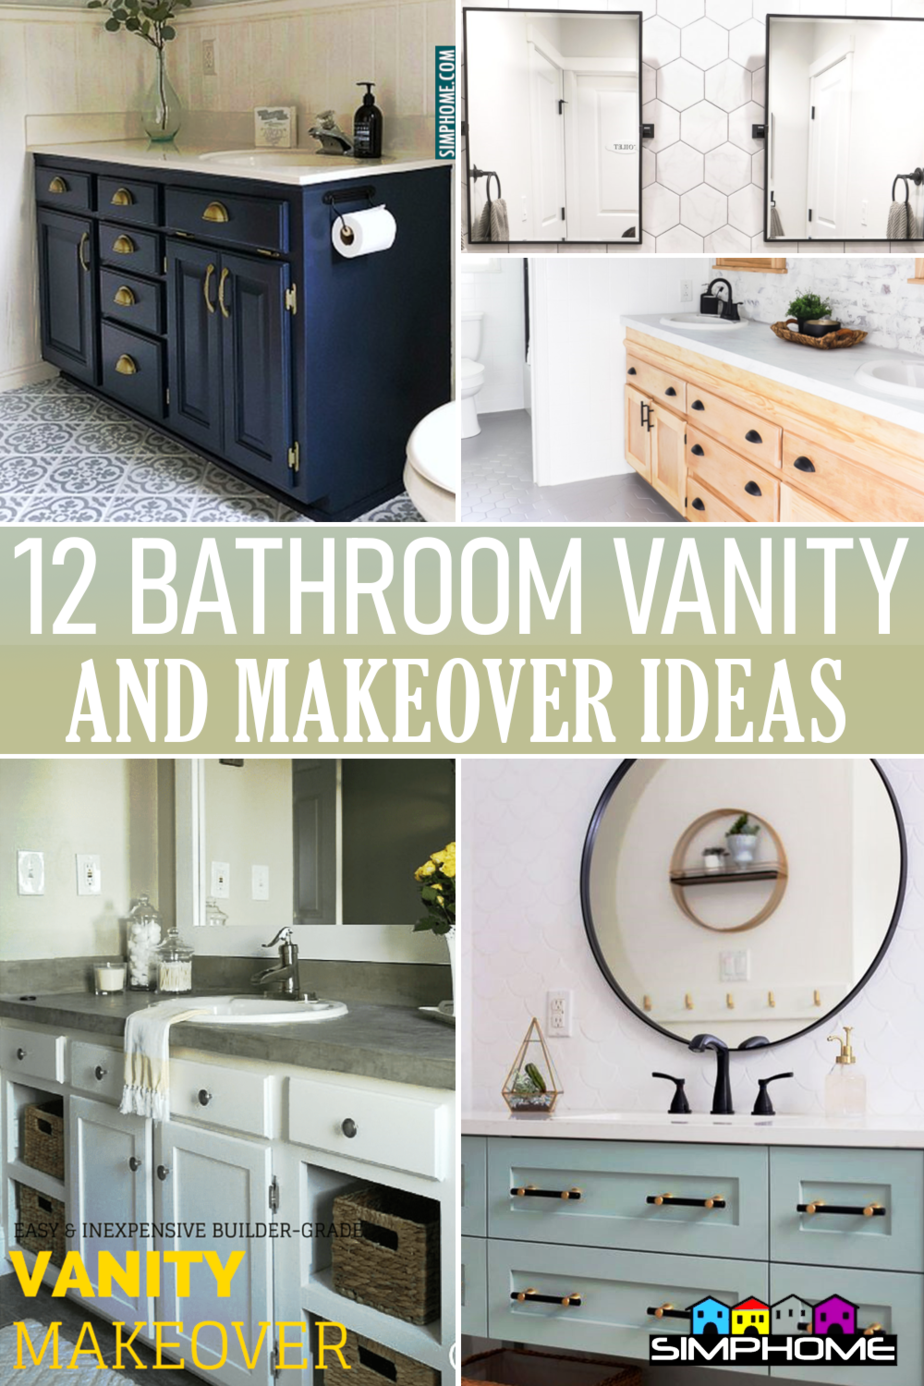 Bathroom vanity makeover ideas via Simphome.comFeatured